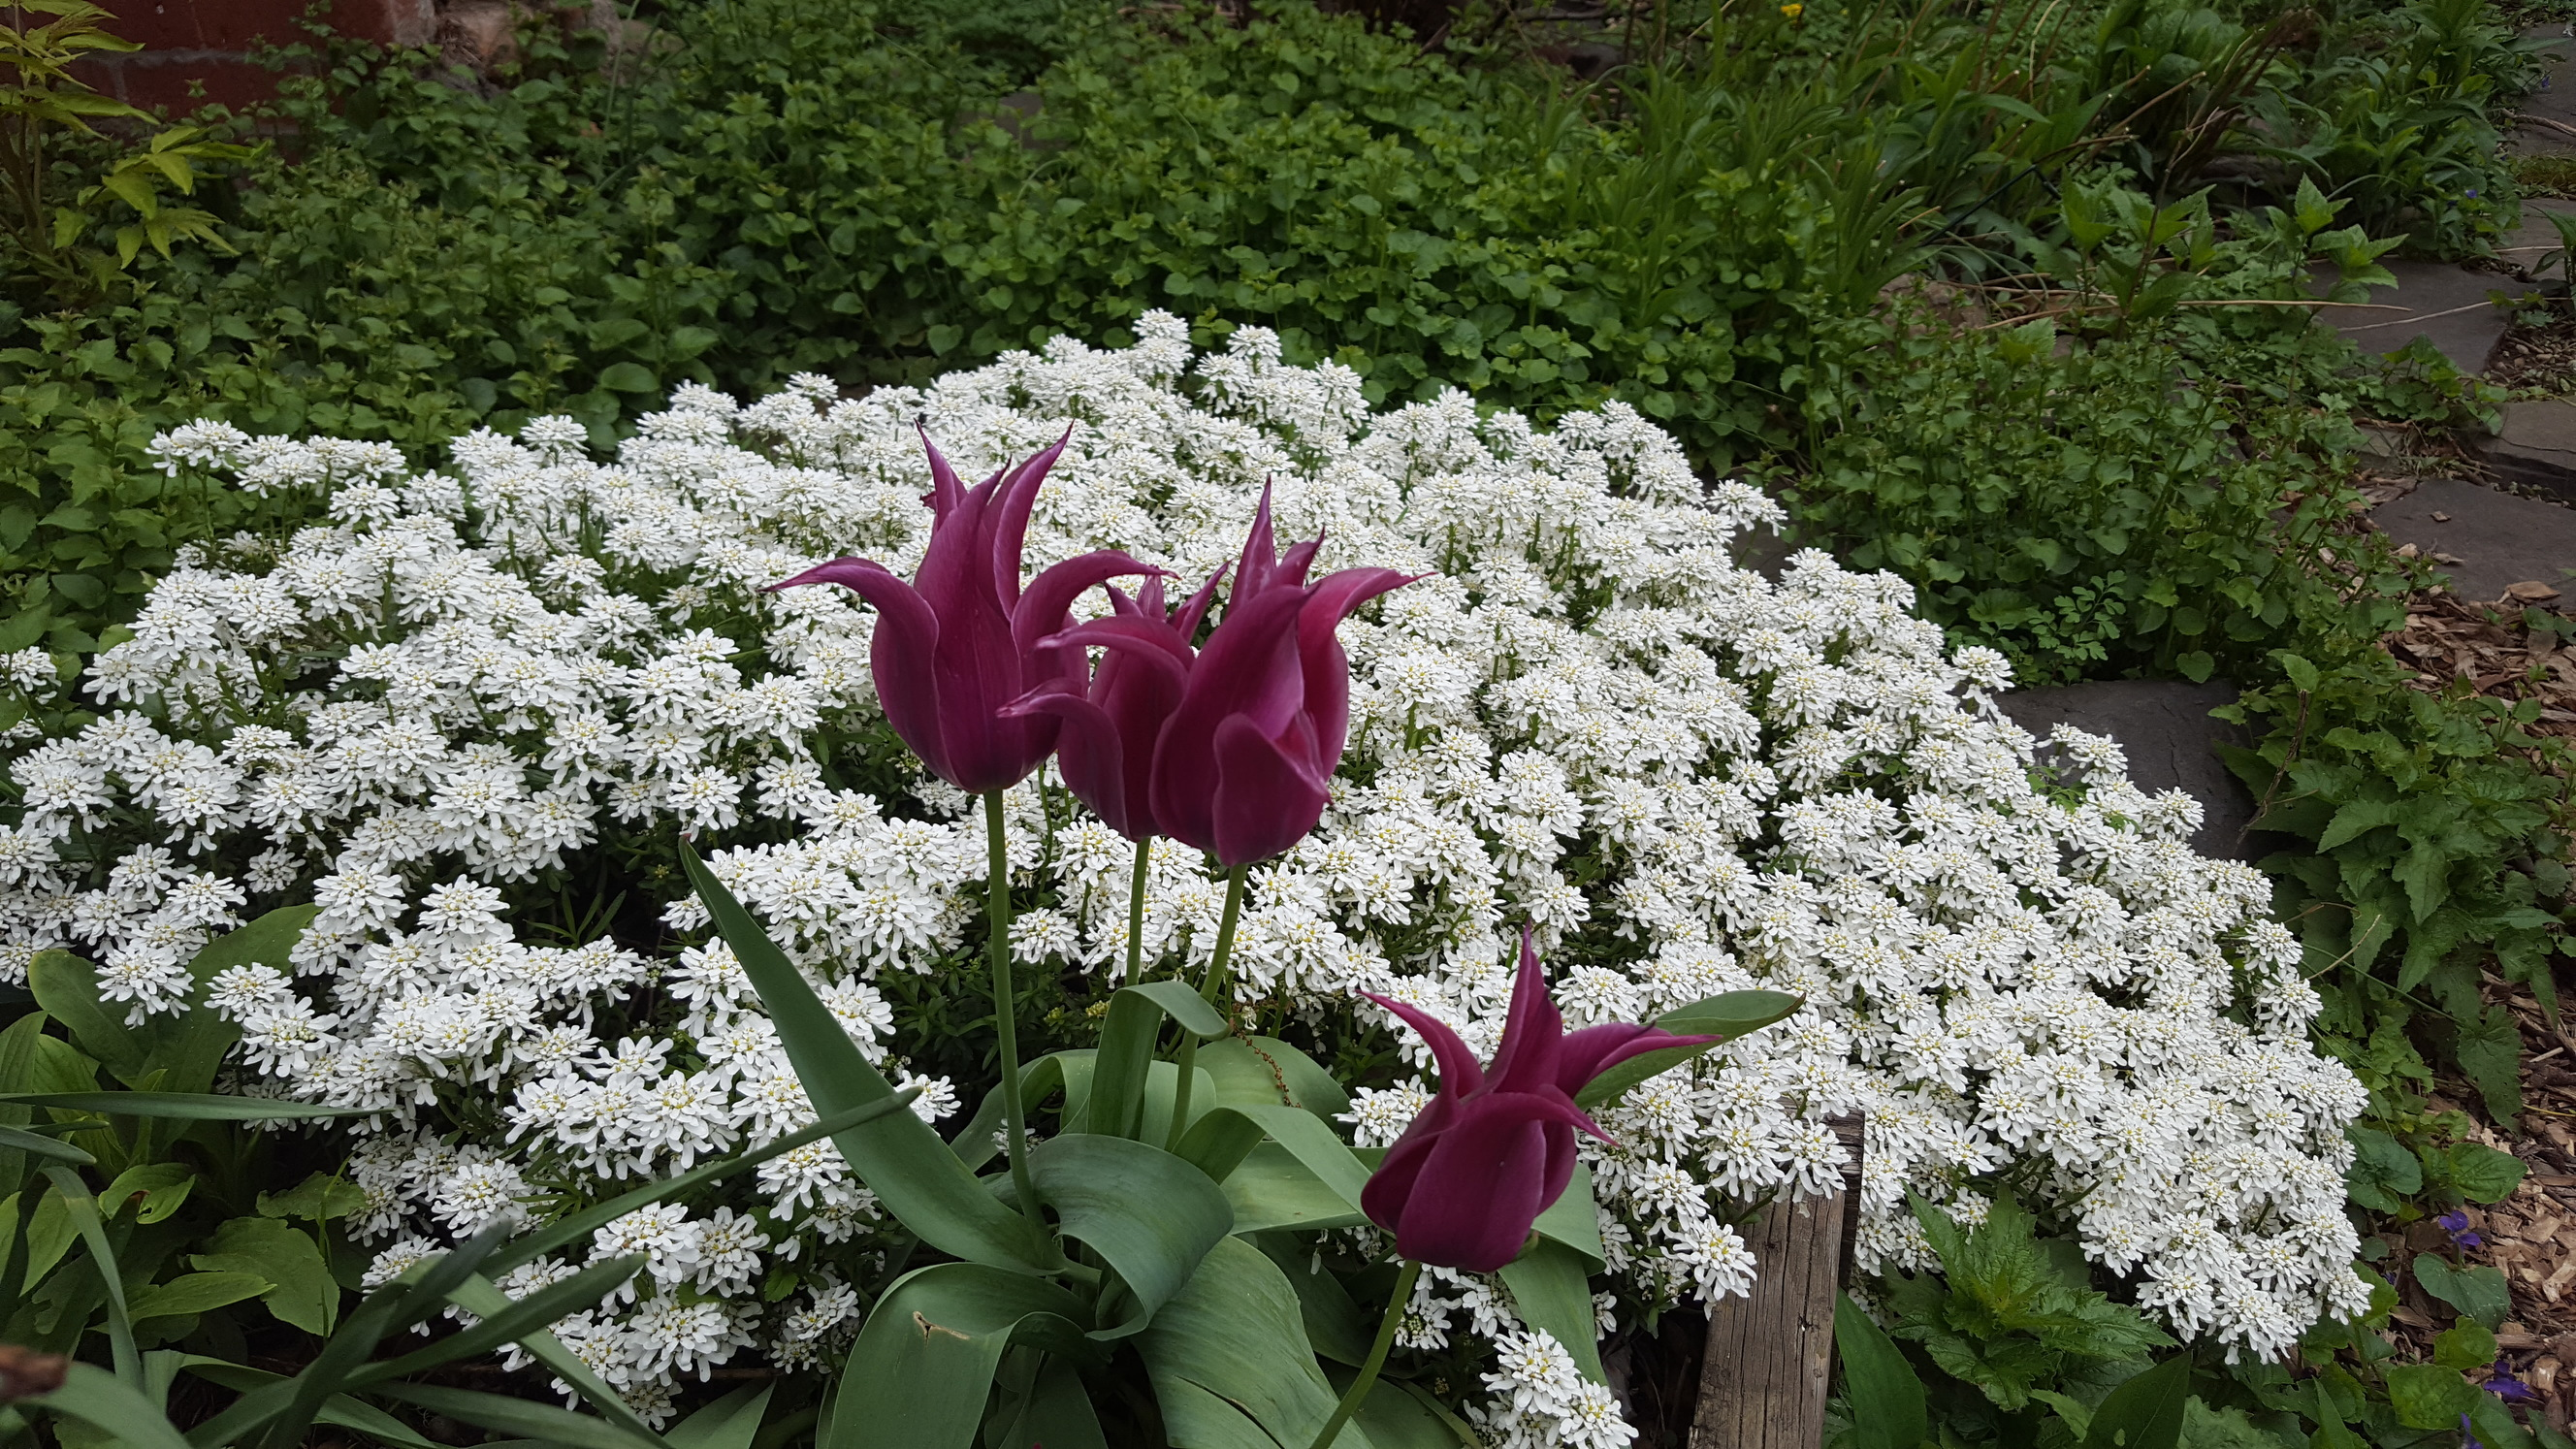 Tulip and Iberis Sempervirens I